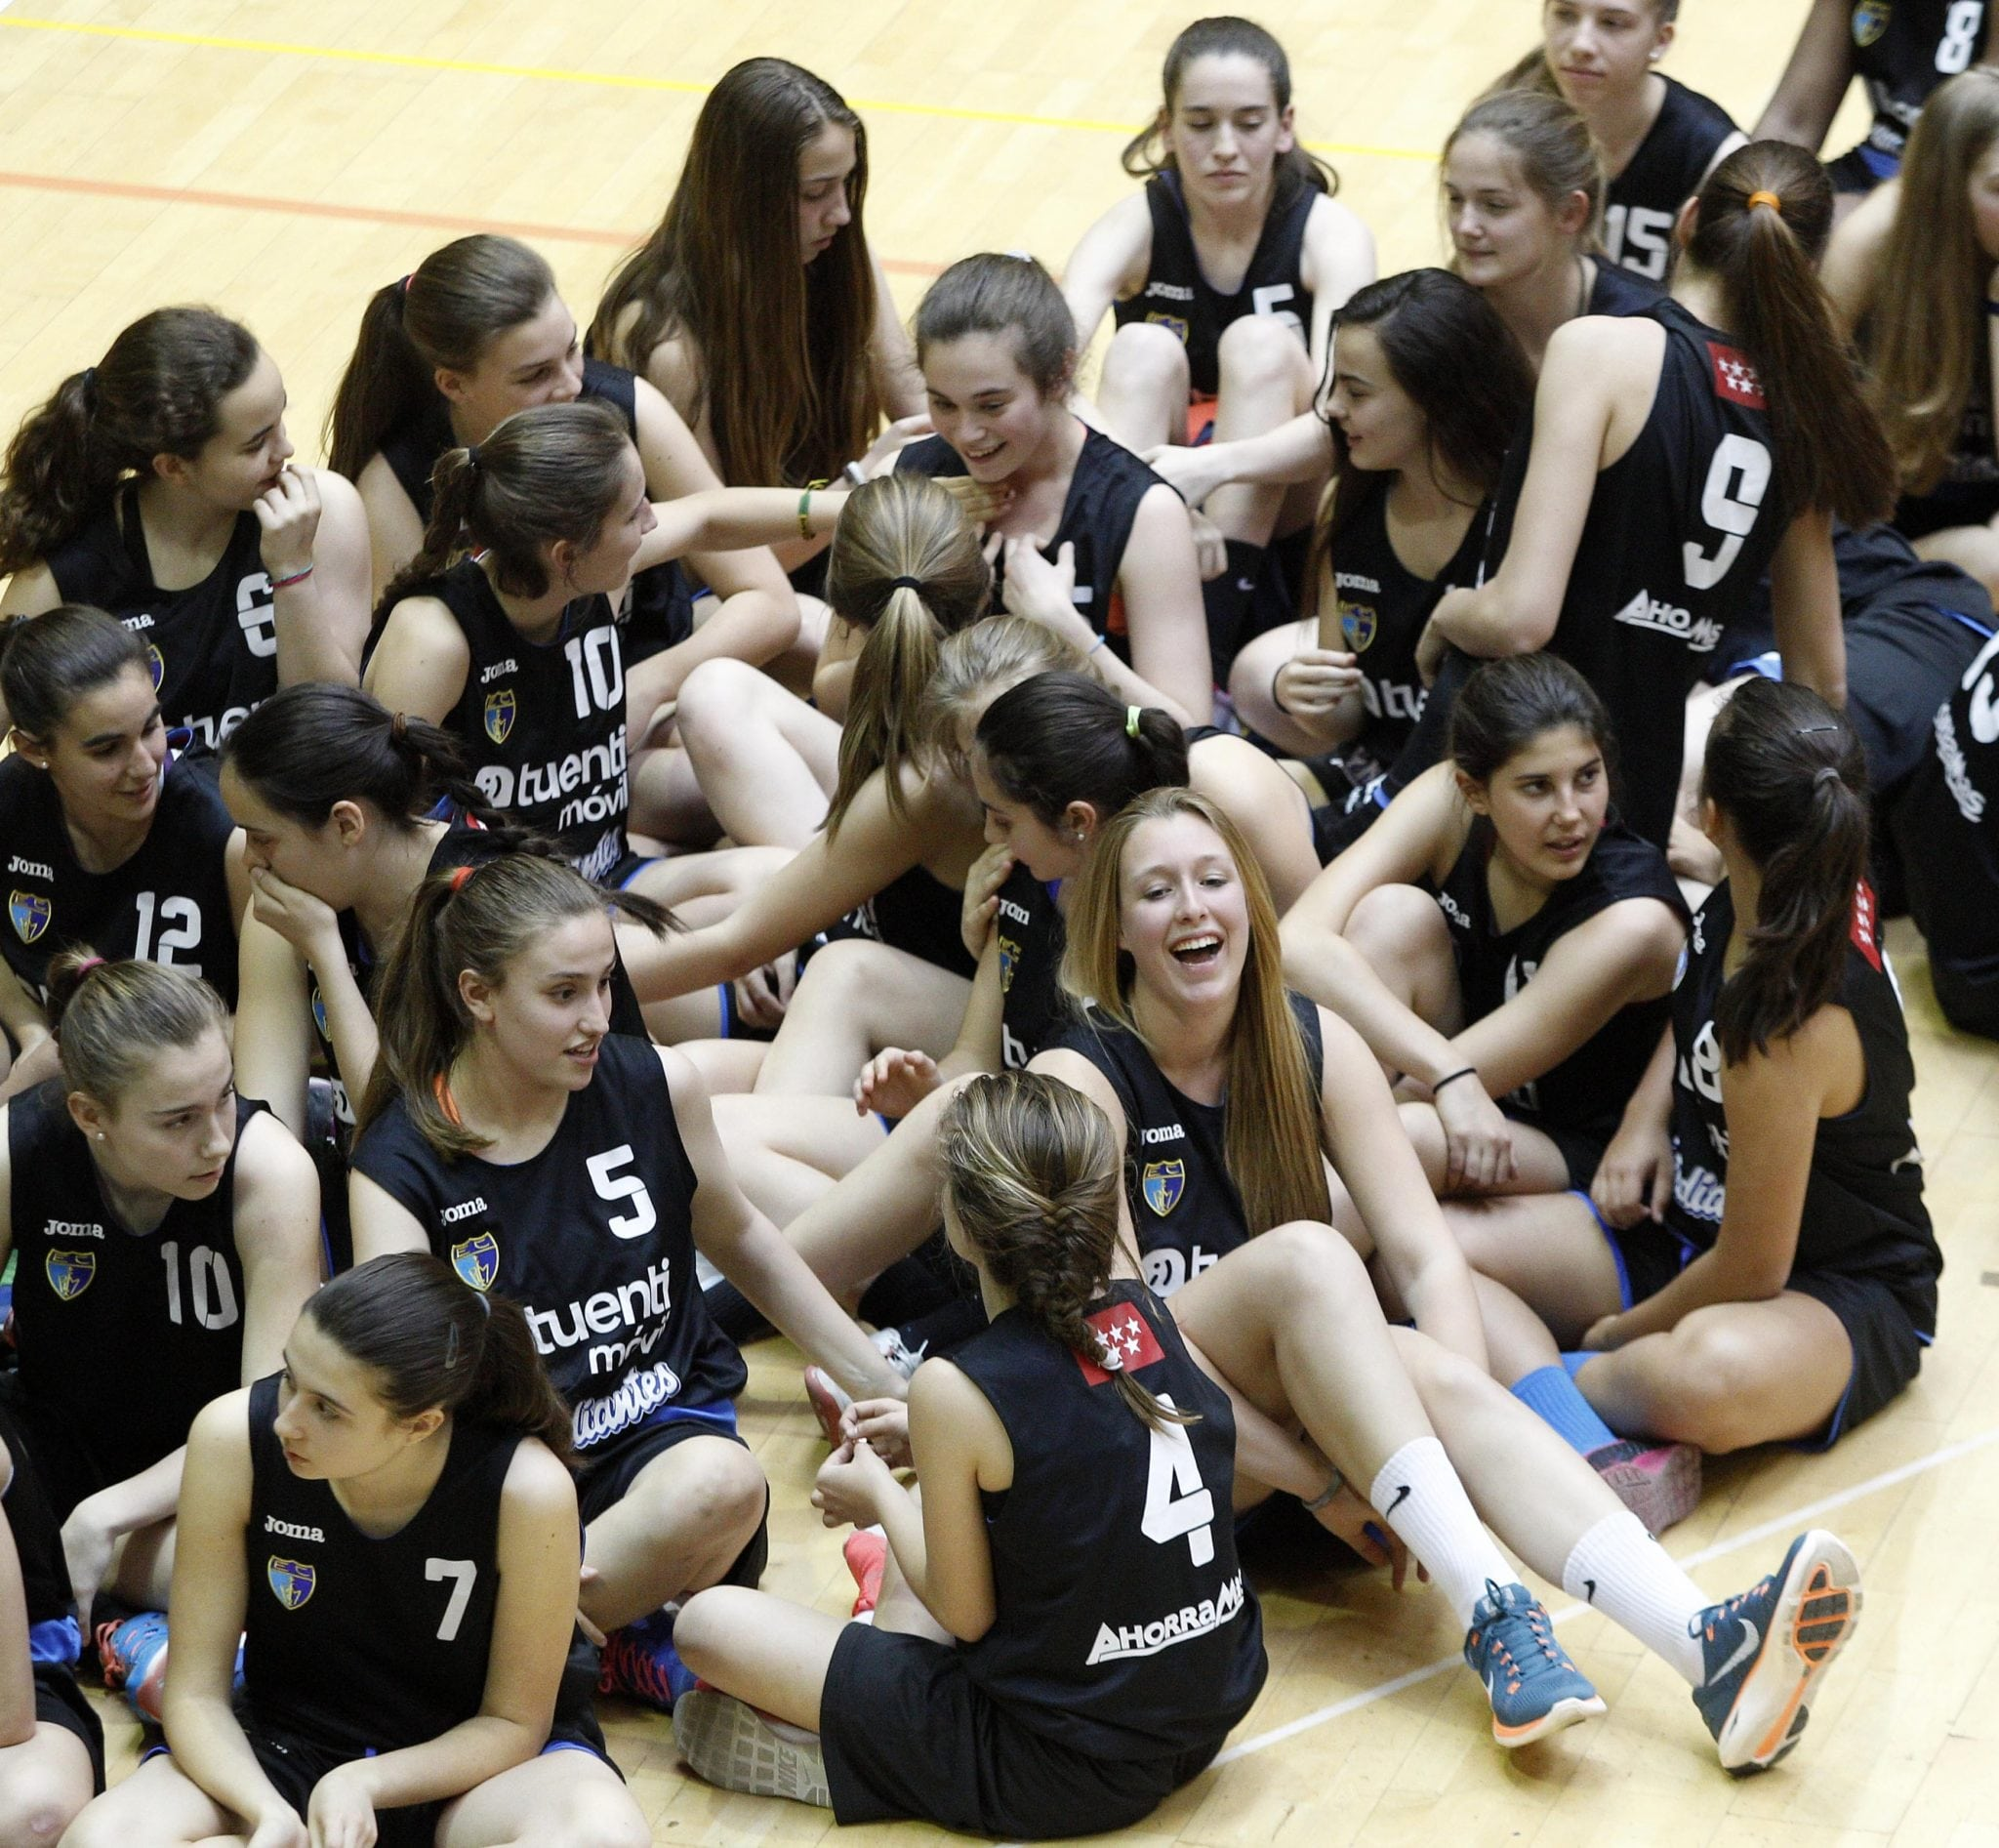 Horarios de cantera (24-26 abril): Final de Madrid Junior Femenina , playoffs cadetes y alevines y liga EBA como platos fuertes del fin de semana largo